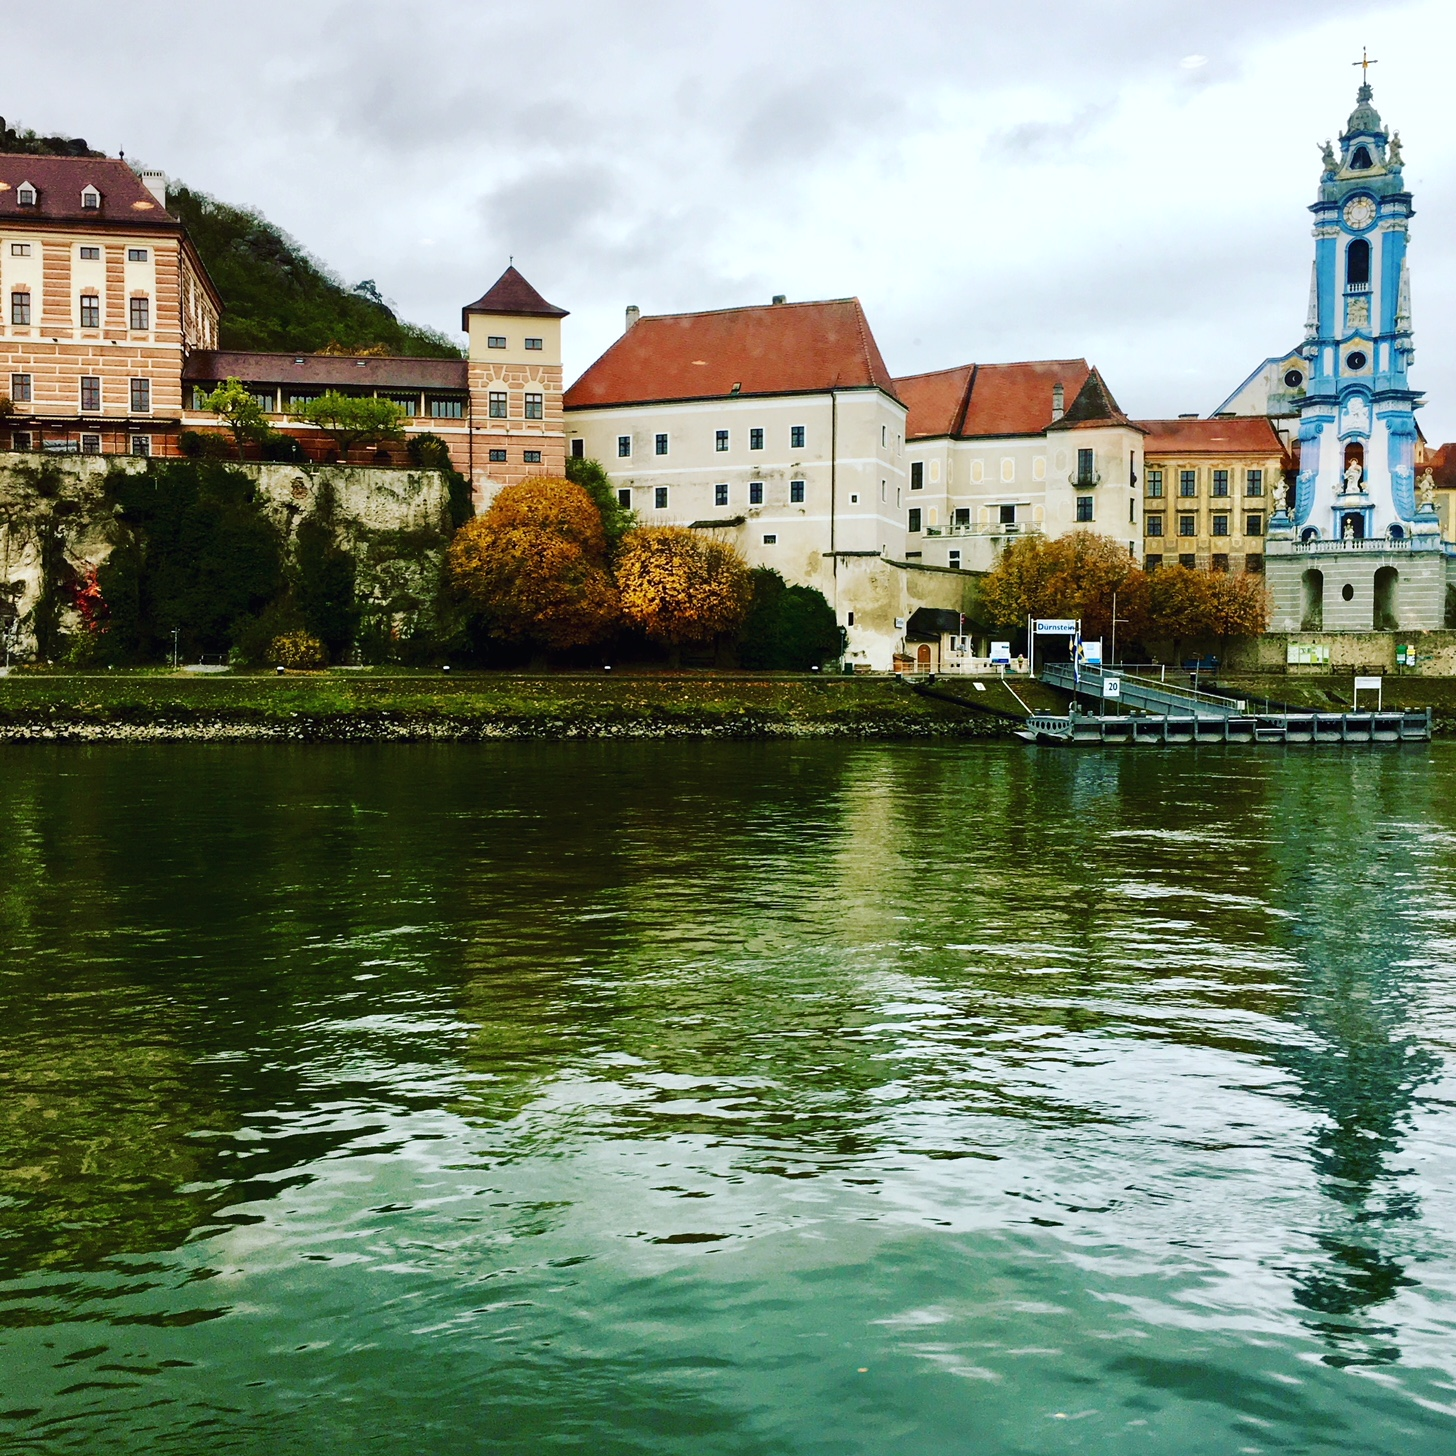 The Village Of Krems Austria On The Danube River Cruise Mike Ross Travel Mike Ross Travel